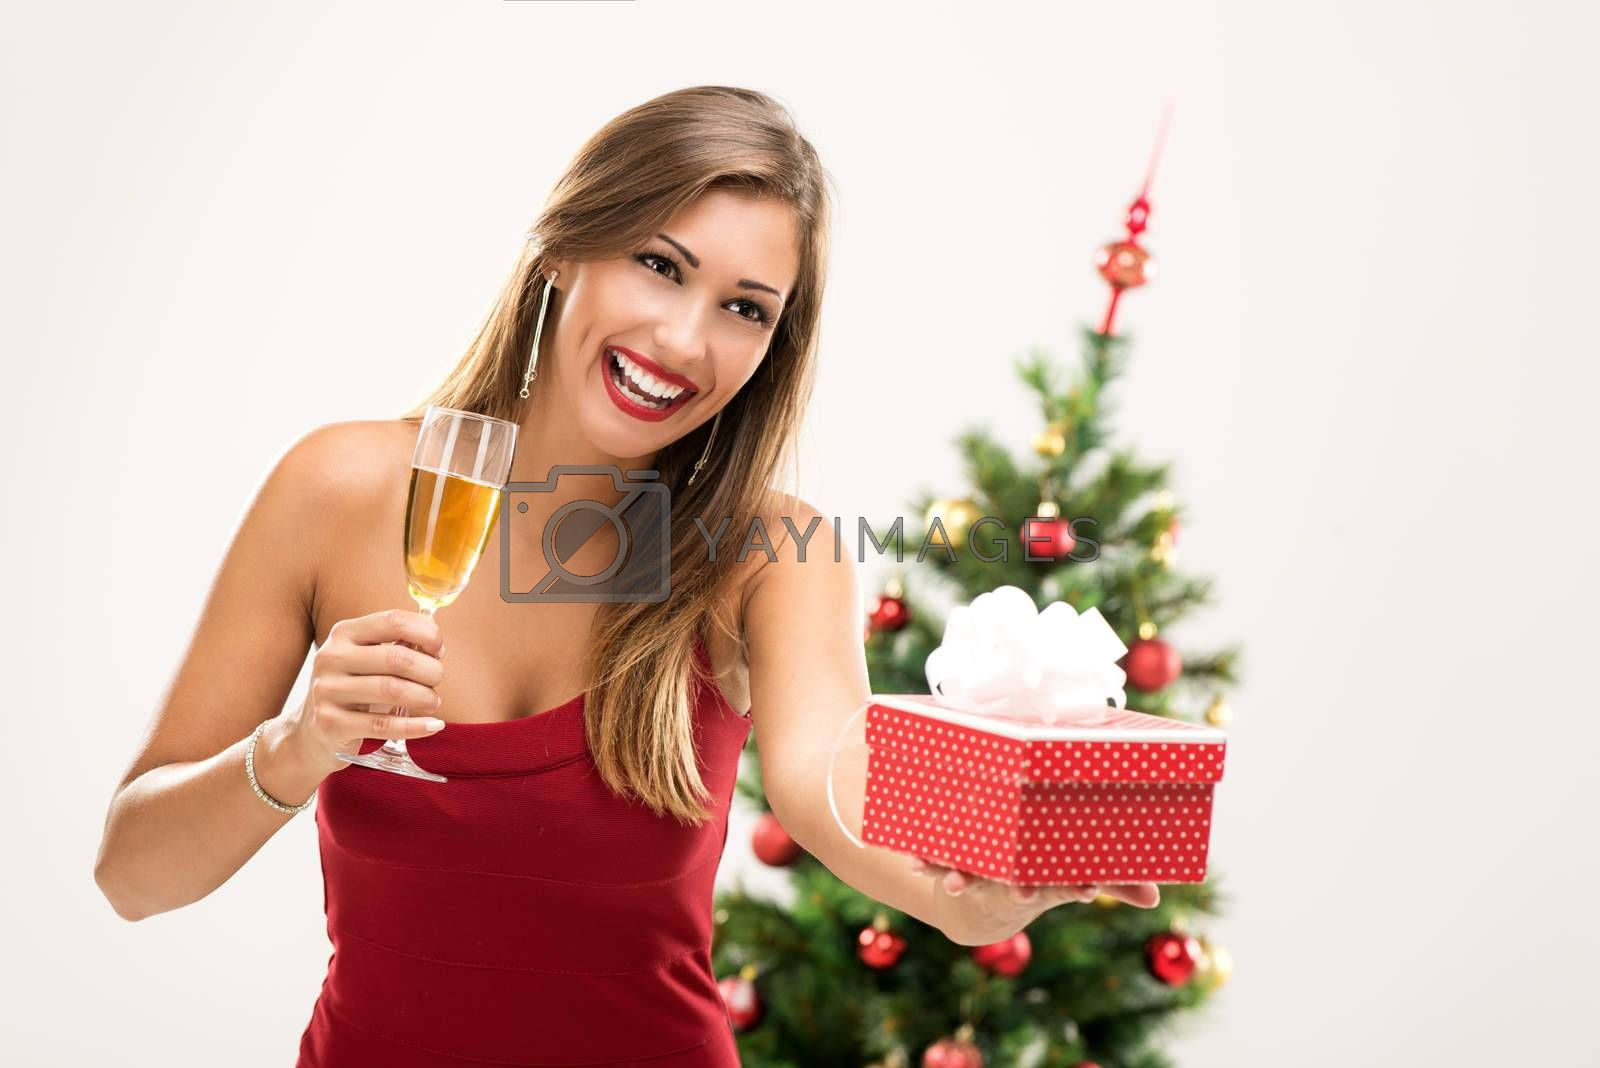 Cheerful beautiful young woman in red dress with Christmas gift toasting with champagne.